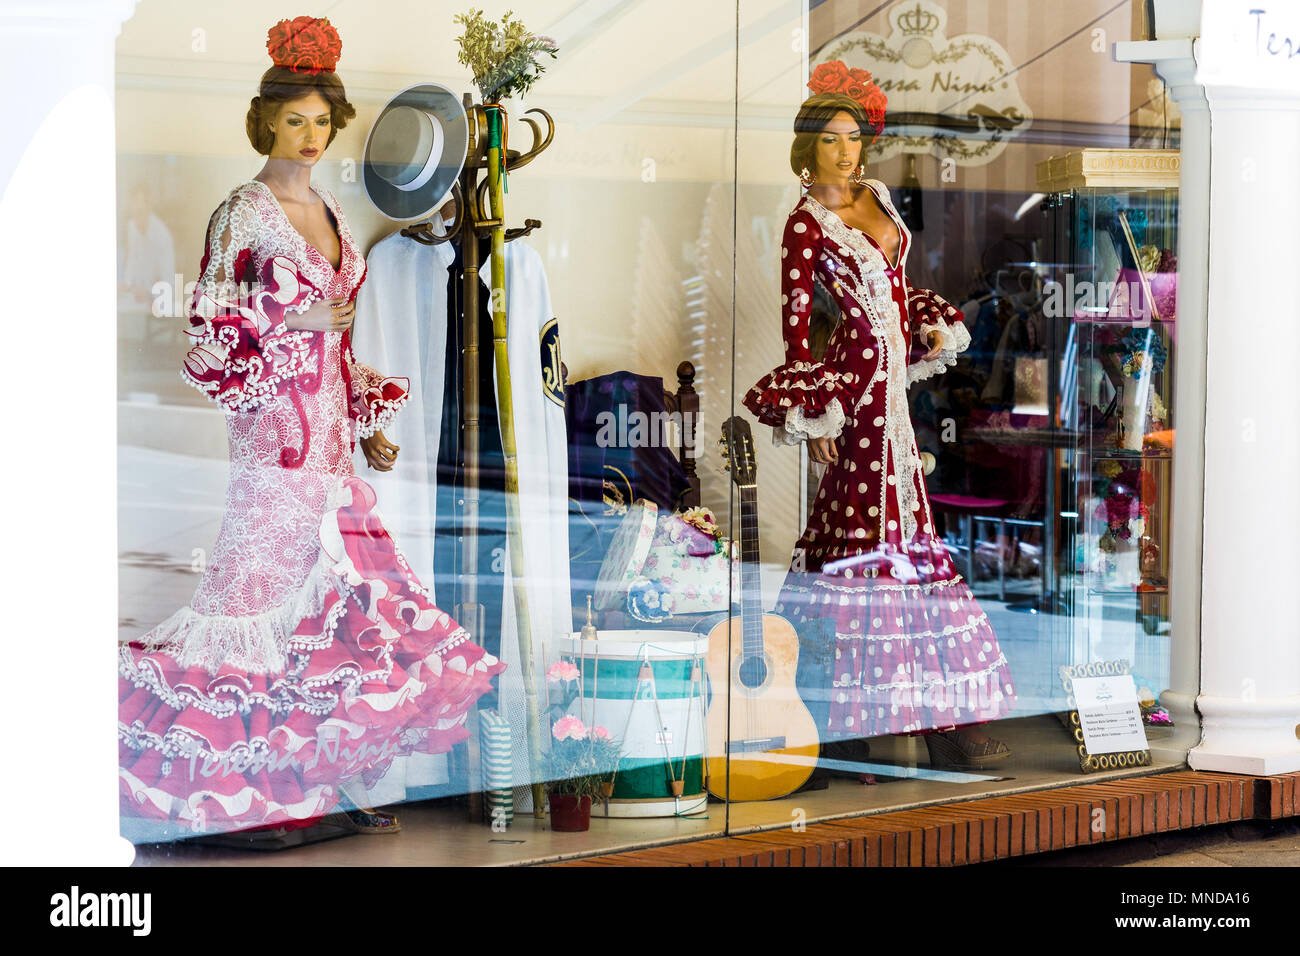 c93d8387f273 Shop window mannequins in traditional flamenco dresses display. Spain -  Stock Image